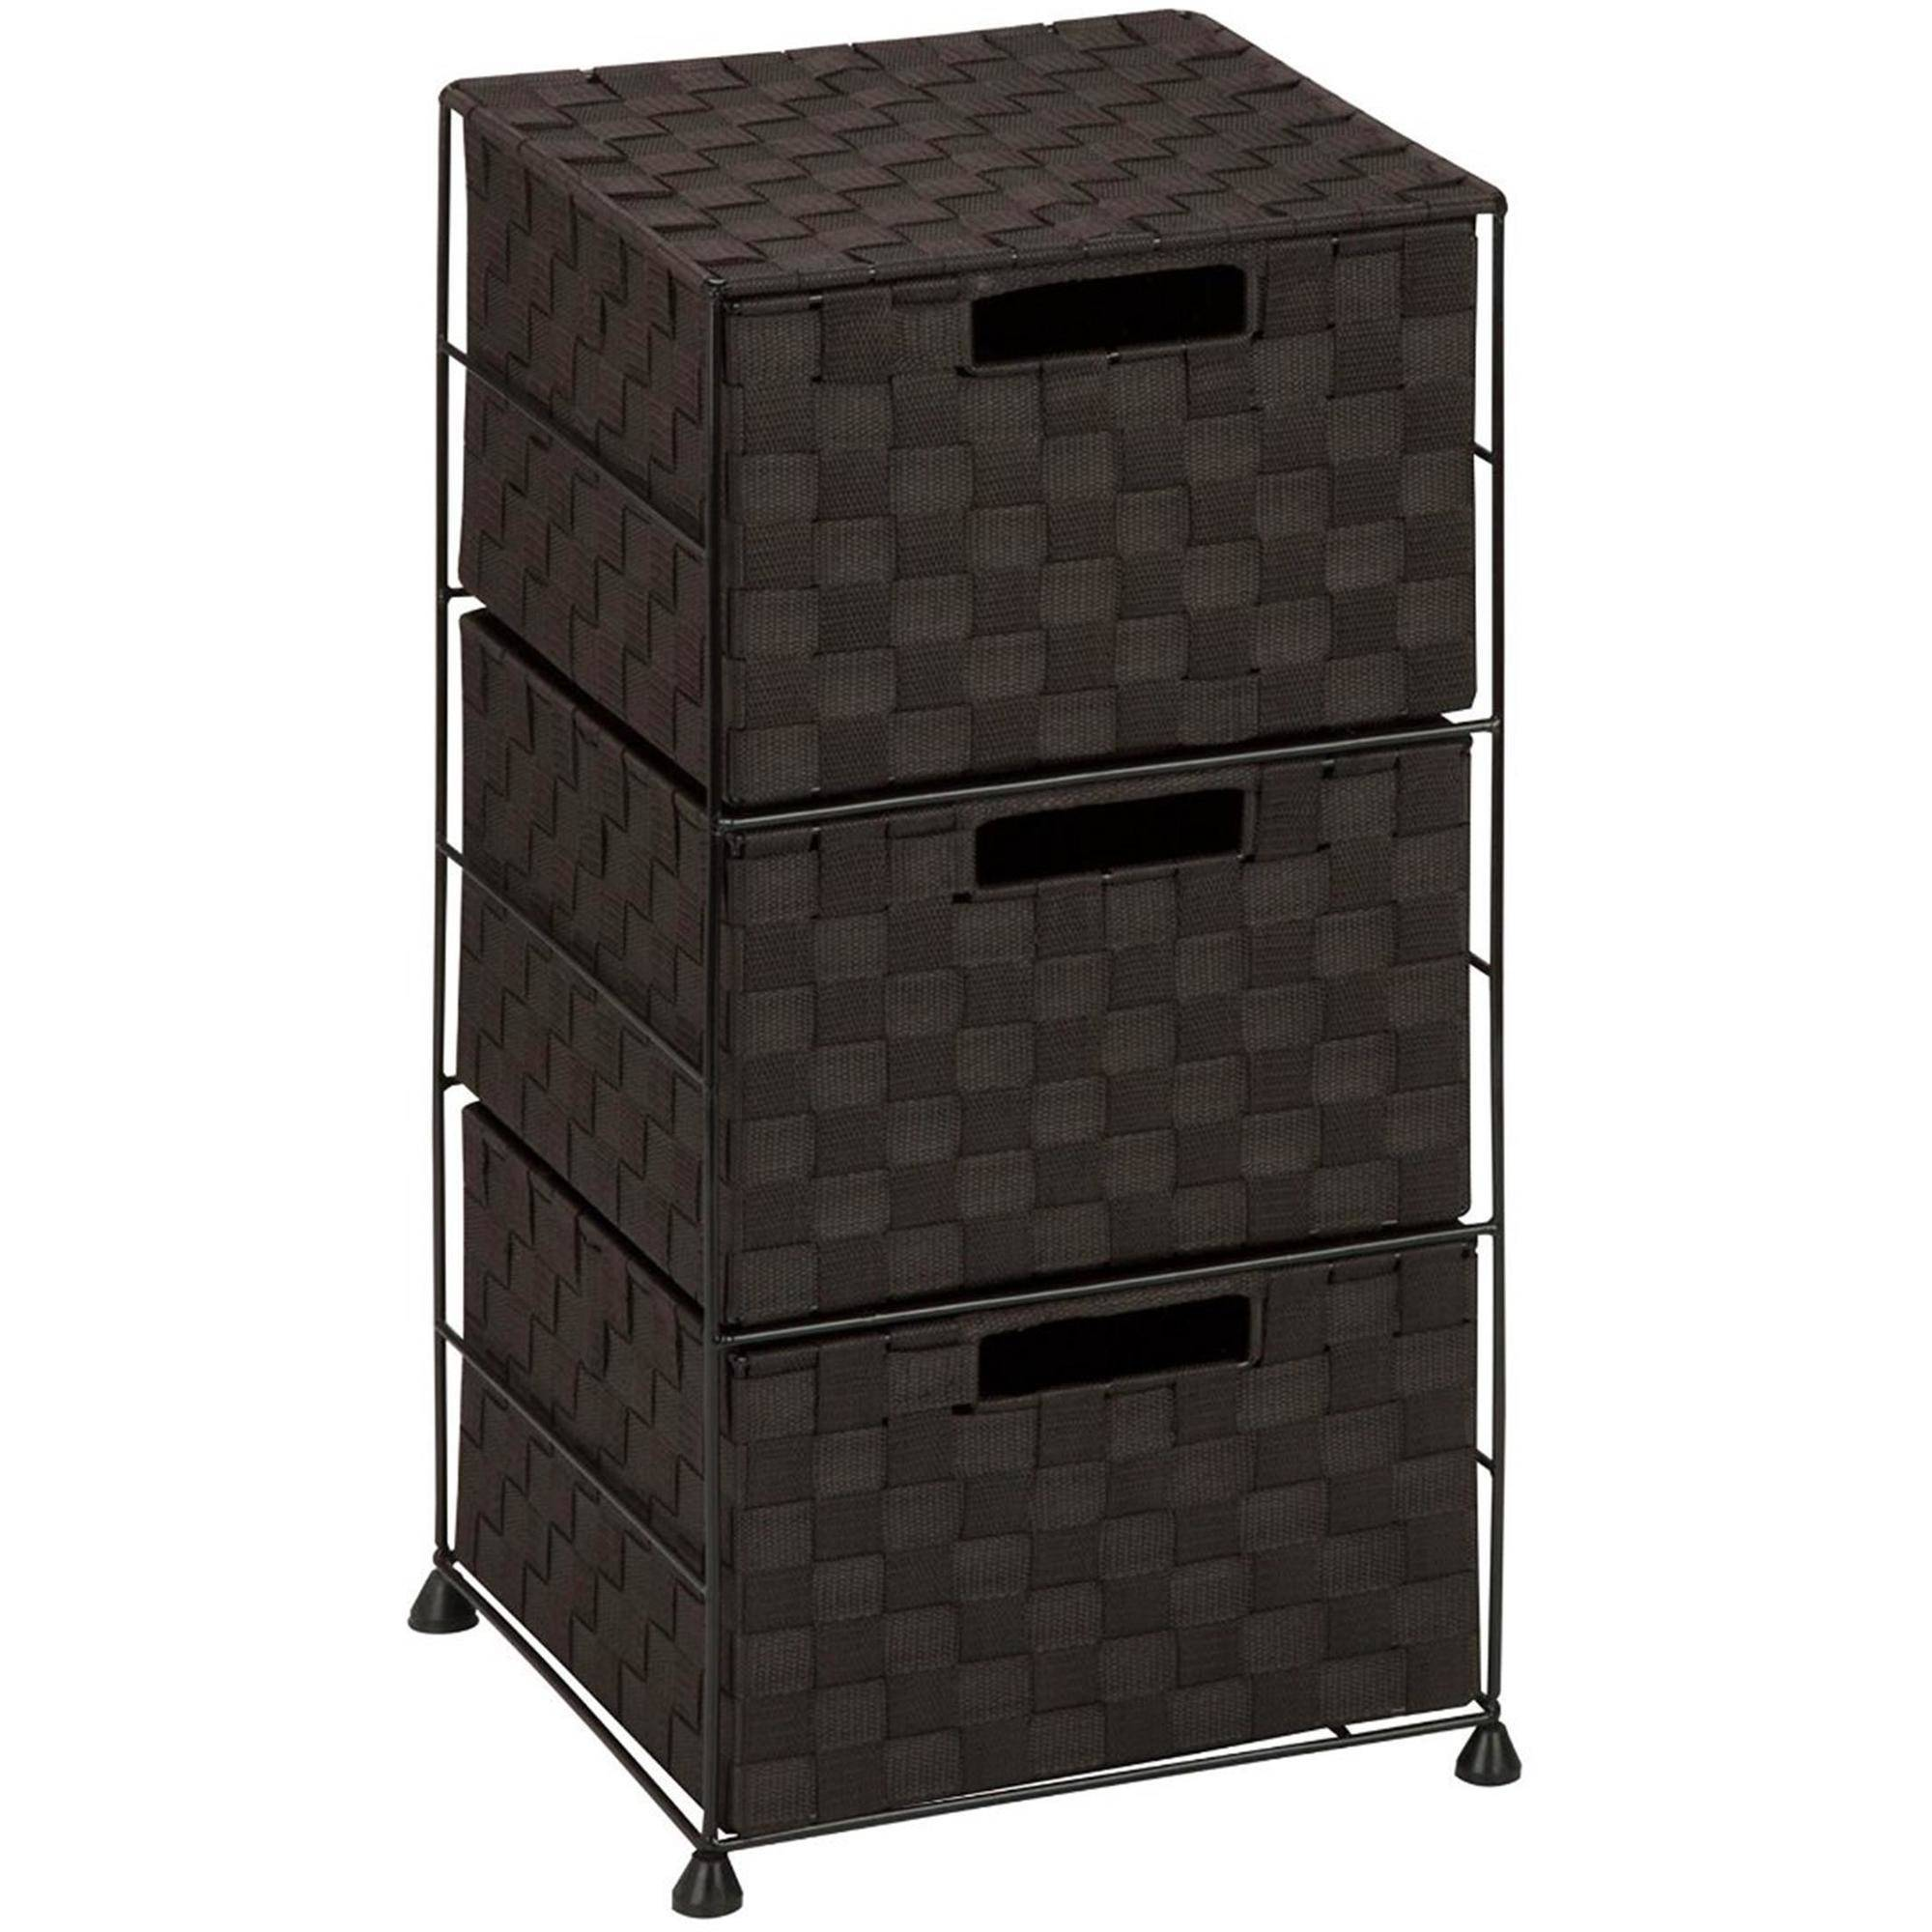 Honey Can Do Steel Wire Rolling Cart with 3 Woven Fabric Drawers, Brown